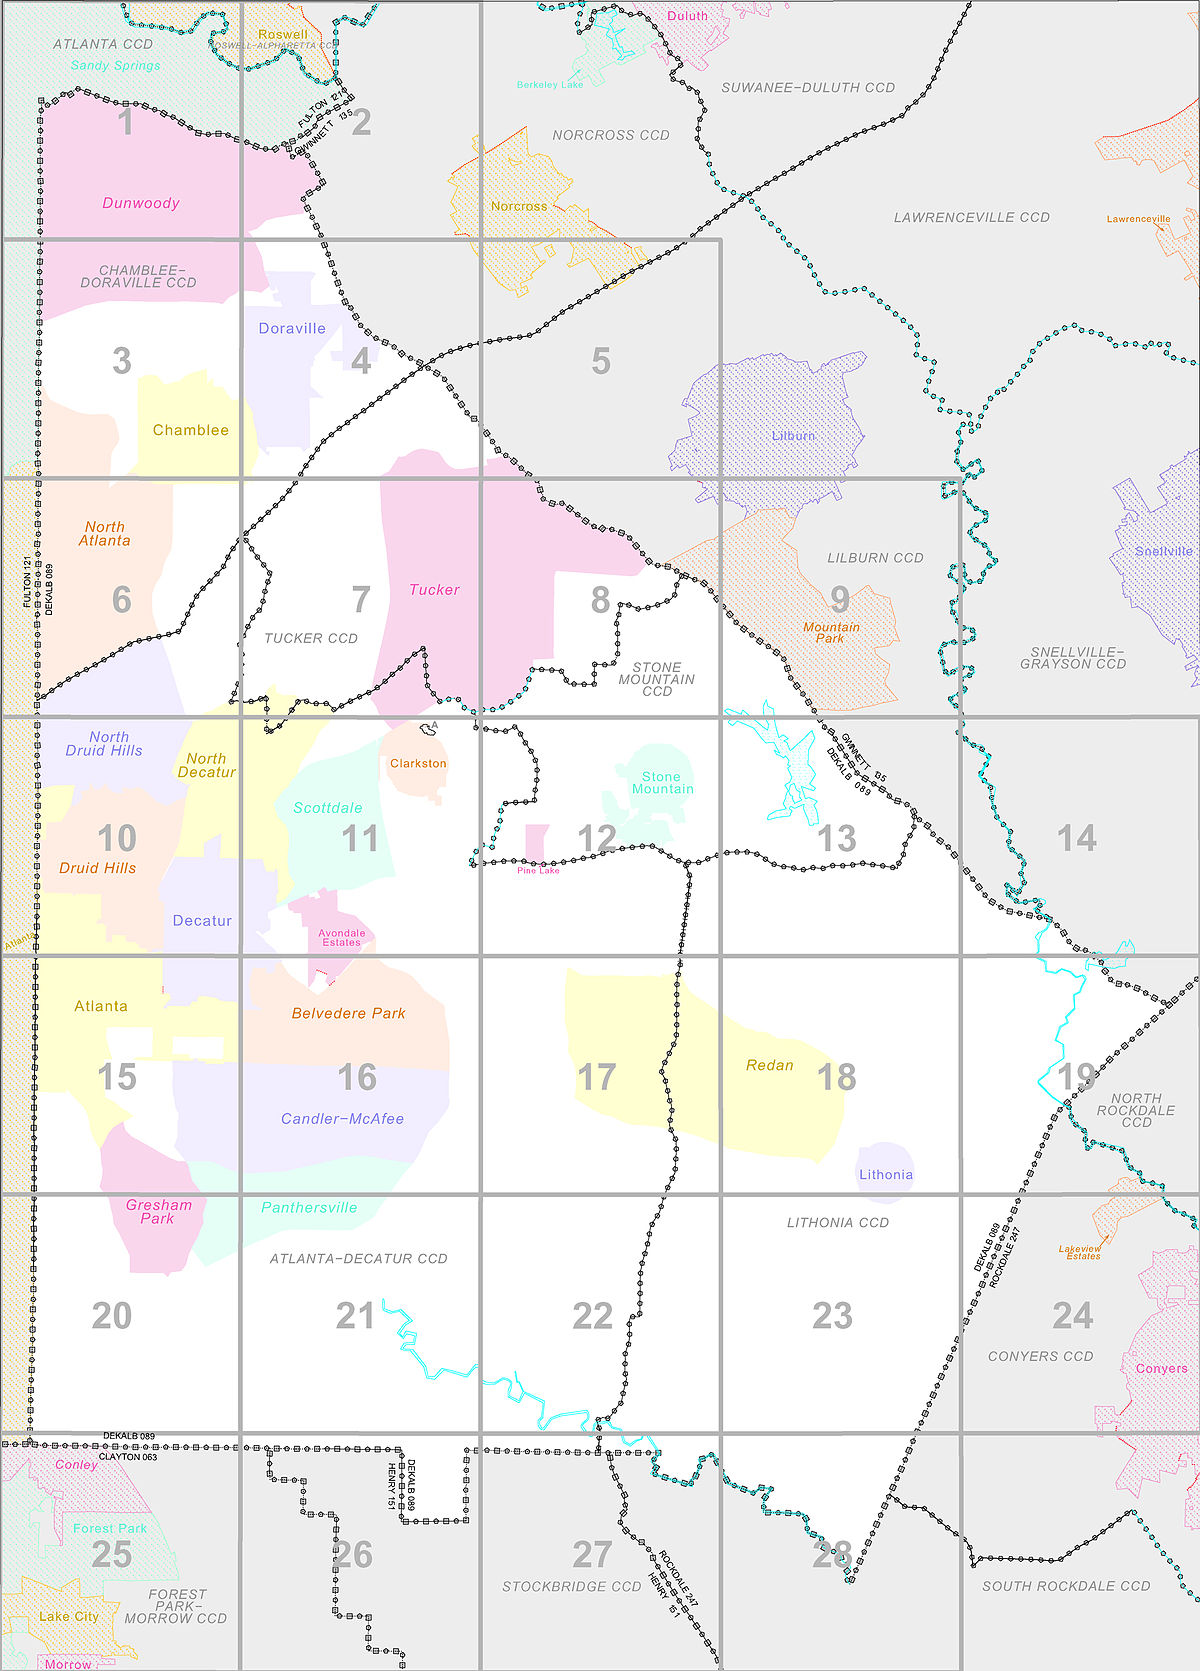 Dekalb Zip Code Map.Census County Division Wikipedia